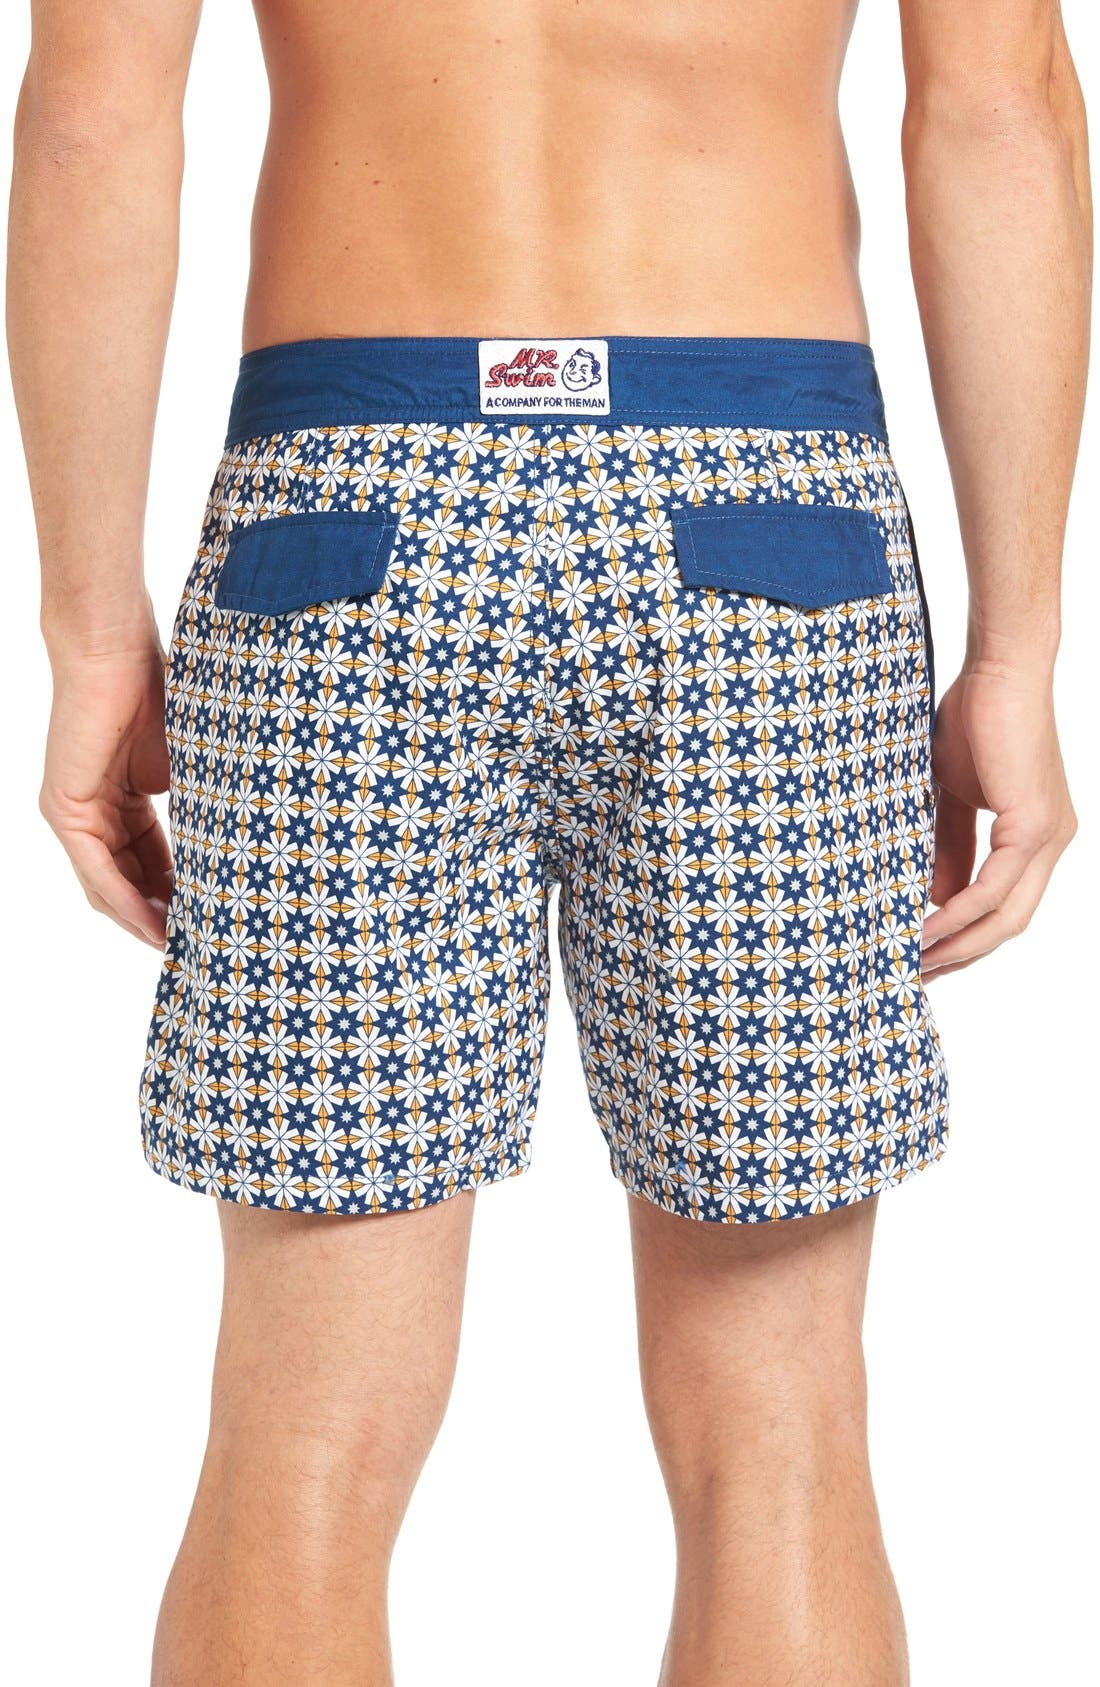 Star Tile Print Board Shorts,                             Alternate thumbnail 2, color,                             Orange